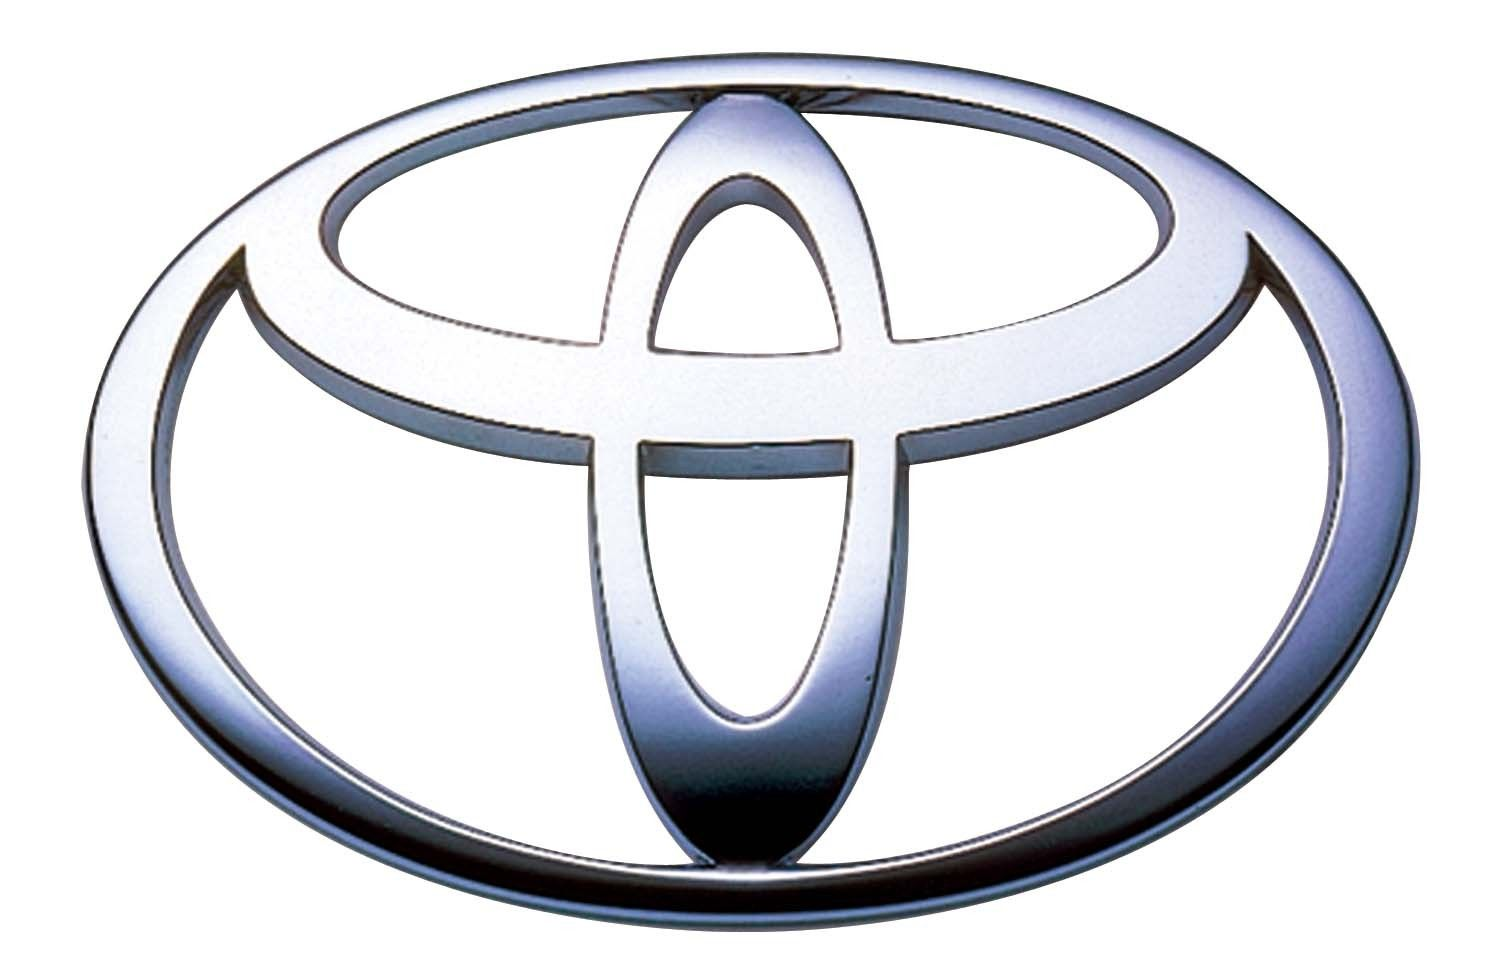 toyota logo logospike com famous and free vector logos logos rh pinterest com logo toyota vectoriel toyota logo vector cdr